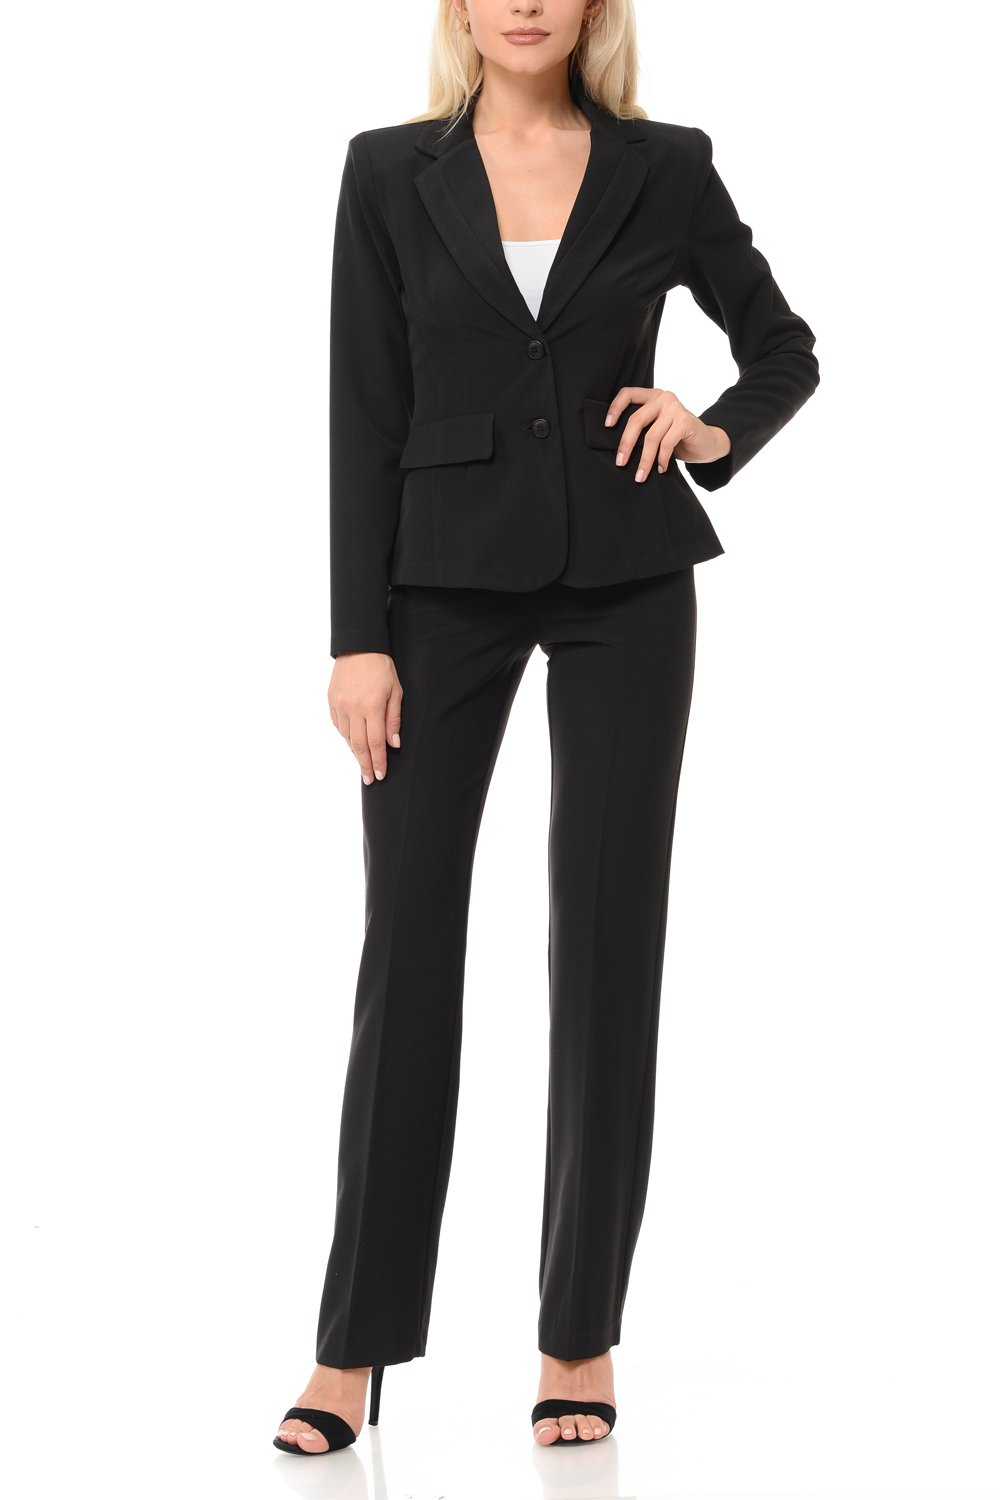 Woman Classic Wear to Office Work Pants Set(3094) (Large, Black)